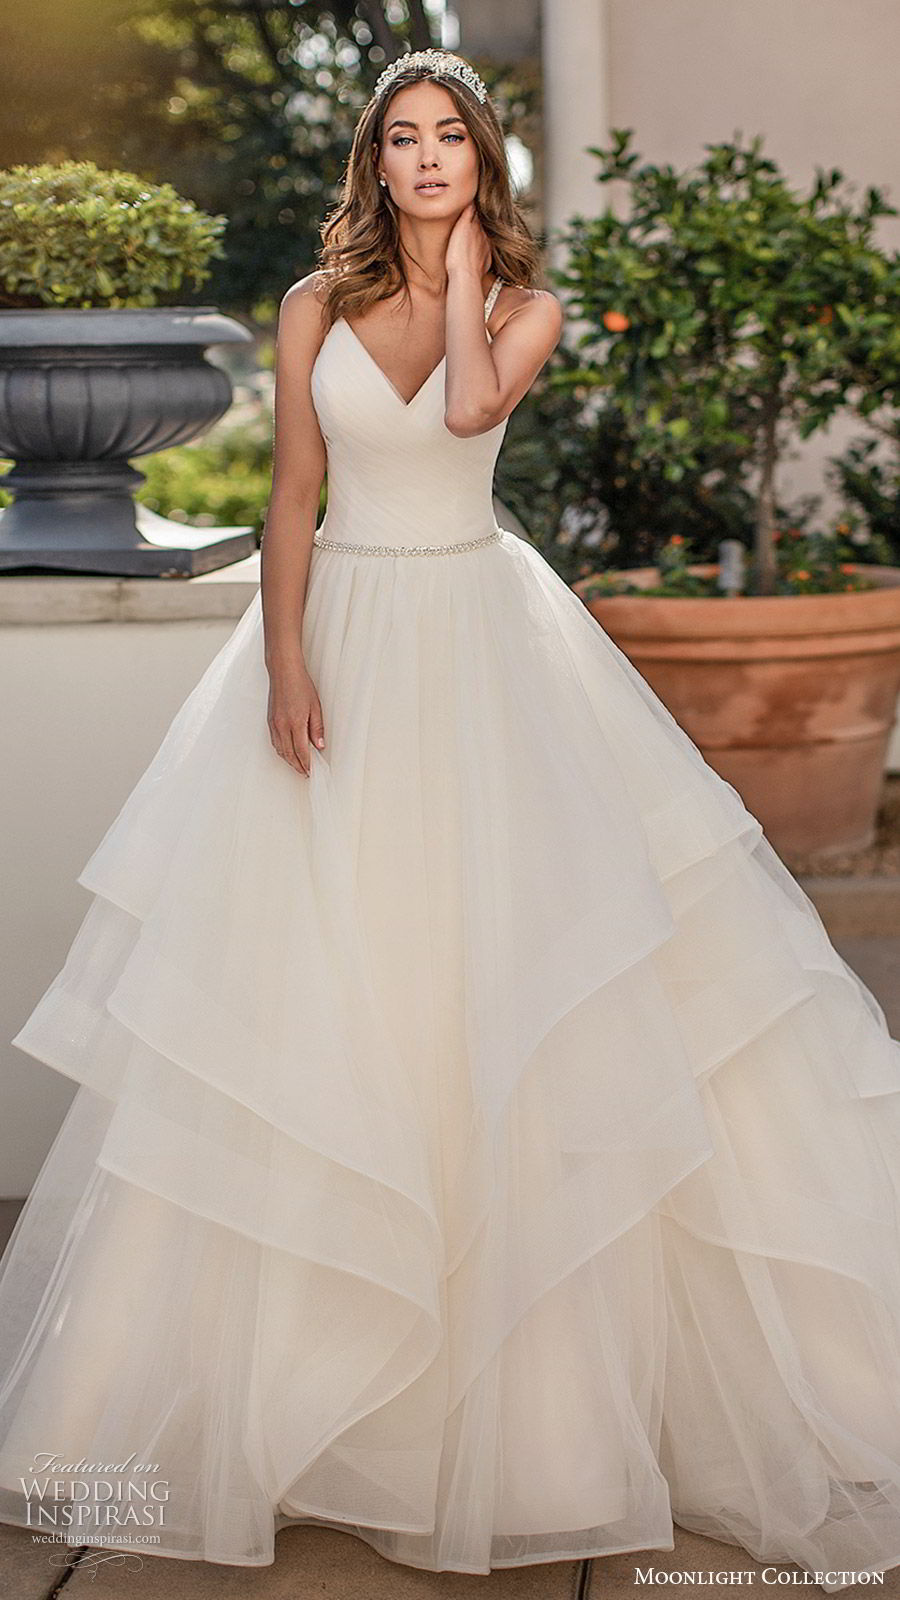 moonlight collection fall 2019 bridal sleeveless embellished straps v neck ruched bodice tiered skirt beaded waist a line ball gown wedding dress (5) clean romantic princess chapel train mv